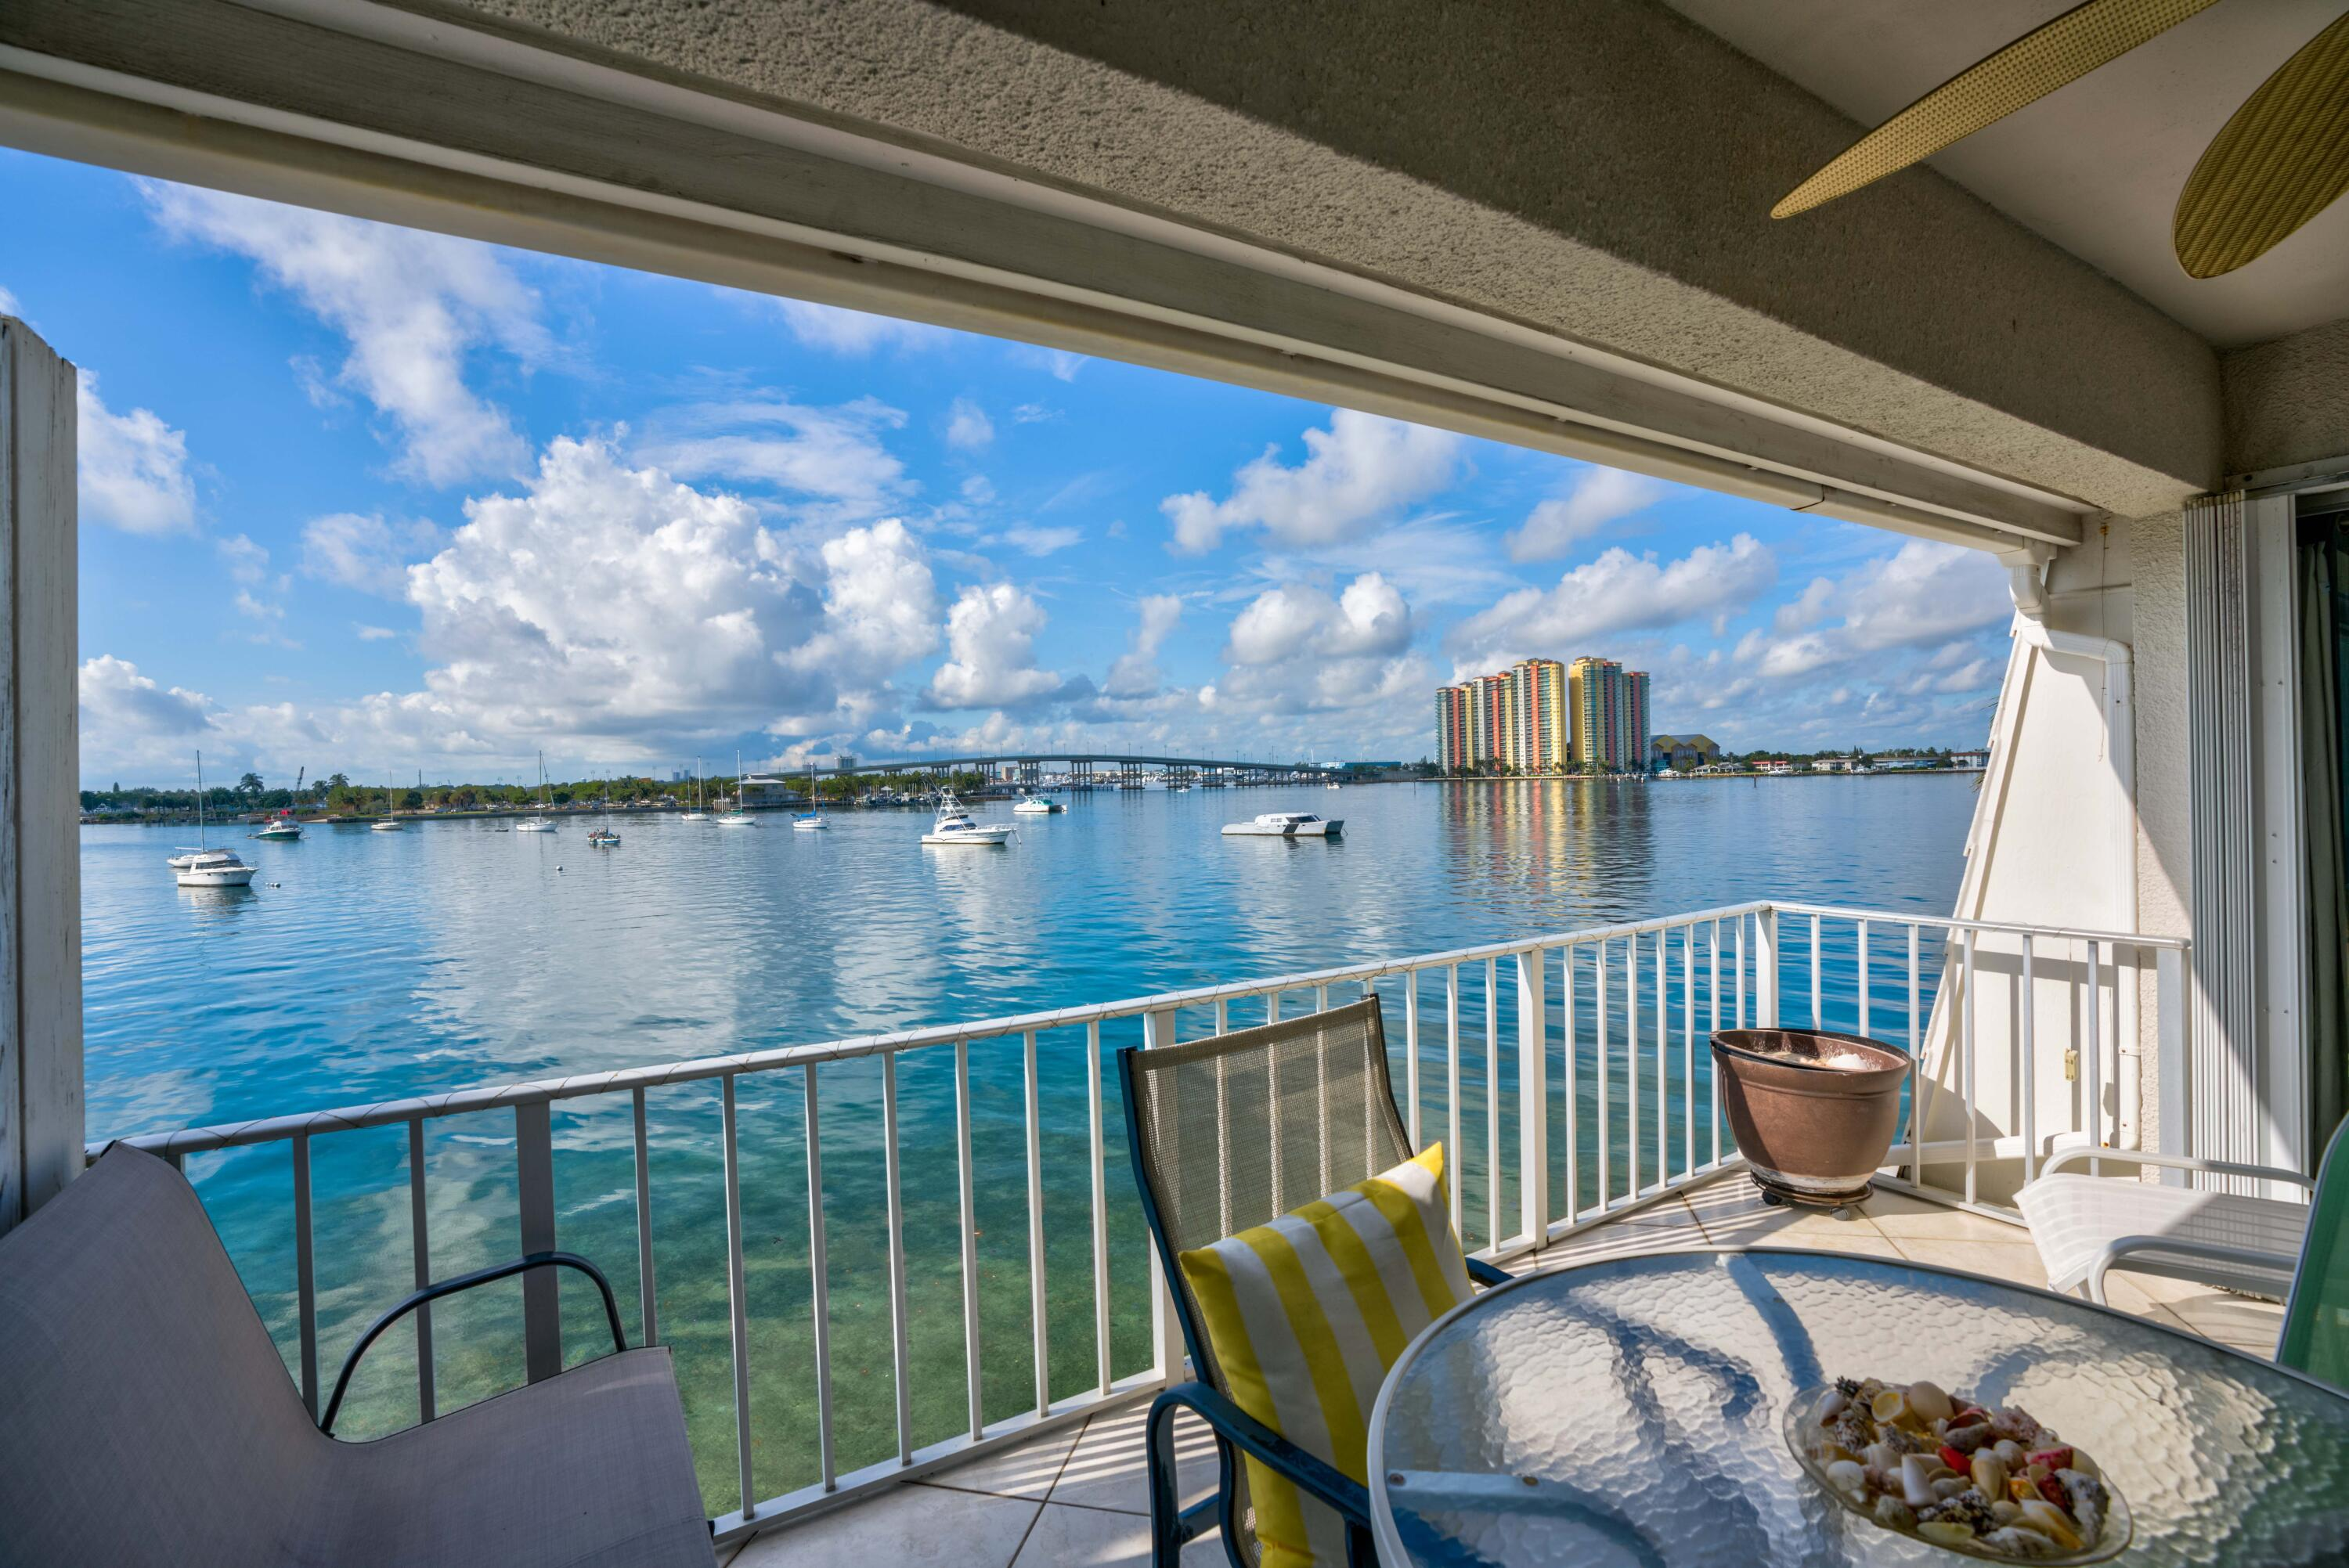 WOW,WOW, WOW, UNOBSTRUCTED VIEWS OVER LOOKING THE INTRACOASTAL WATERWAYS ,WATCH THE BOATS PASS BY FROM YOUR OPEN BALCONY.25 FOOT BOAT SLIP IS INCLUDED WITH THIS SALE. ALL TILE FLOORS, SOME UPGRADES IN 2 BEDROOMS,2 BATH UNIT,CLEAN ,BRIGHT AND CHEERFUL. PRESENTLY RENTED UNTIL 8/31/22 @ $ 2500.00 PER MONTH,NET $ 20,000.00 PER YEAR ,GREAT INVESTMENT WHILE WAITING TO MOVE IN.OLYMPIC SIZE SWIMMING POOL,TENNIS COURTS ,BBQ AREA,CLUBHOUSE,SHUFFLE BOARD, 55 AND OVER VERY ACTIVE COMMUNITY. ASSIGNED PARKING.0WNER WILL FINANCE WITH 25 % DOWN